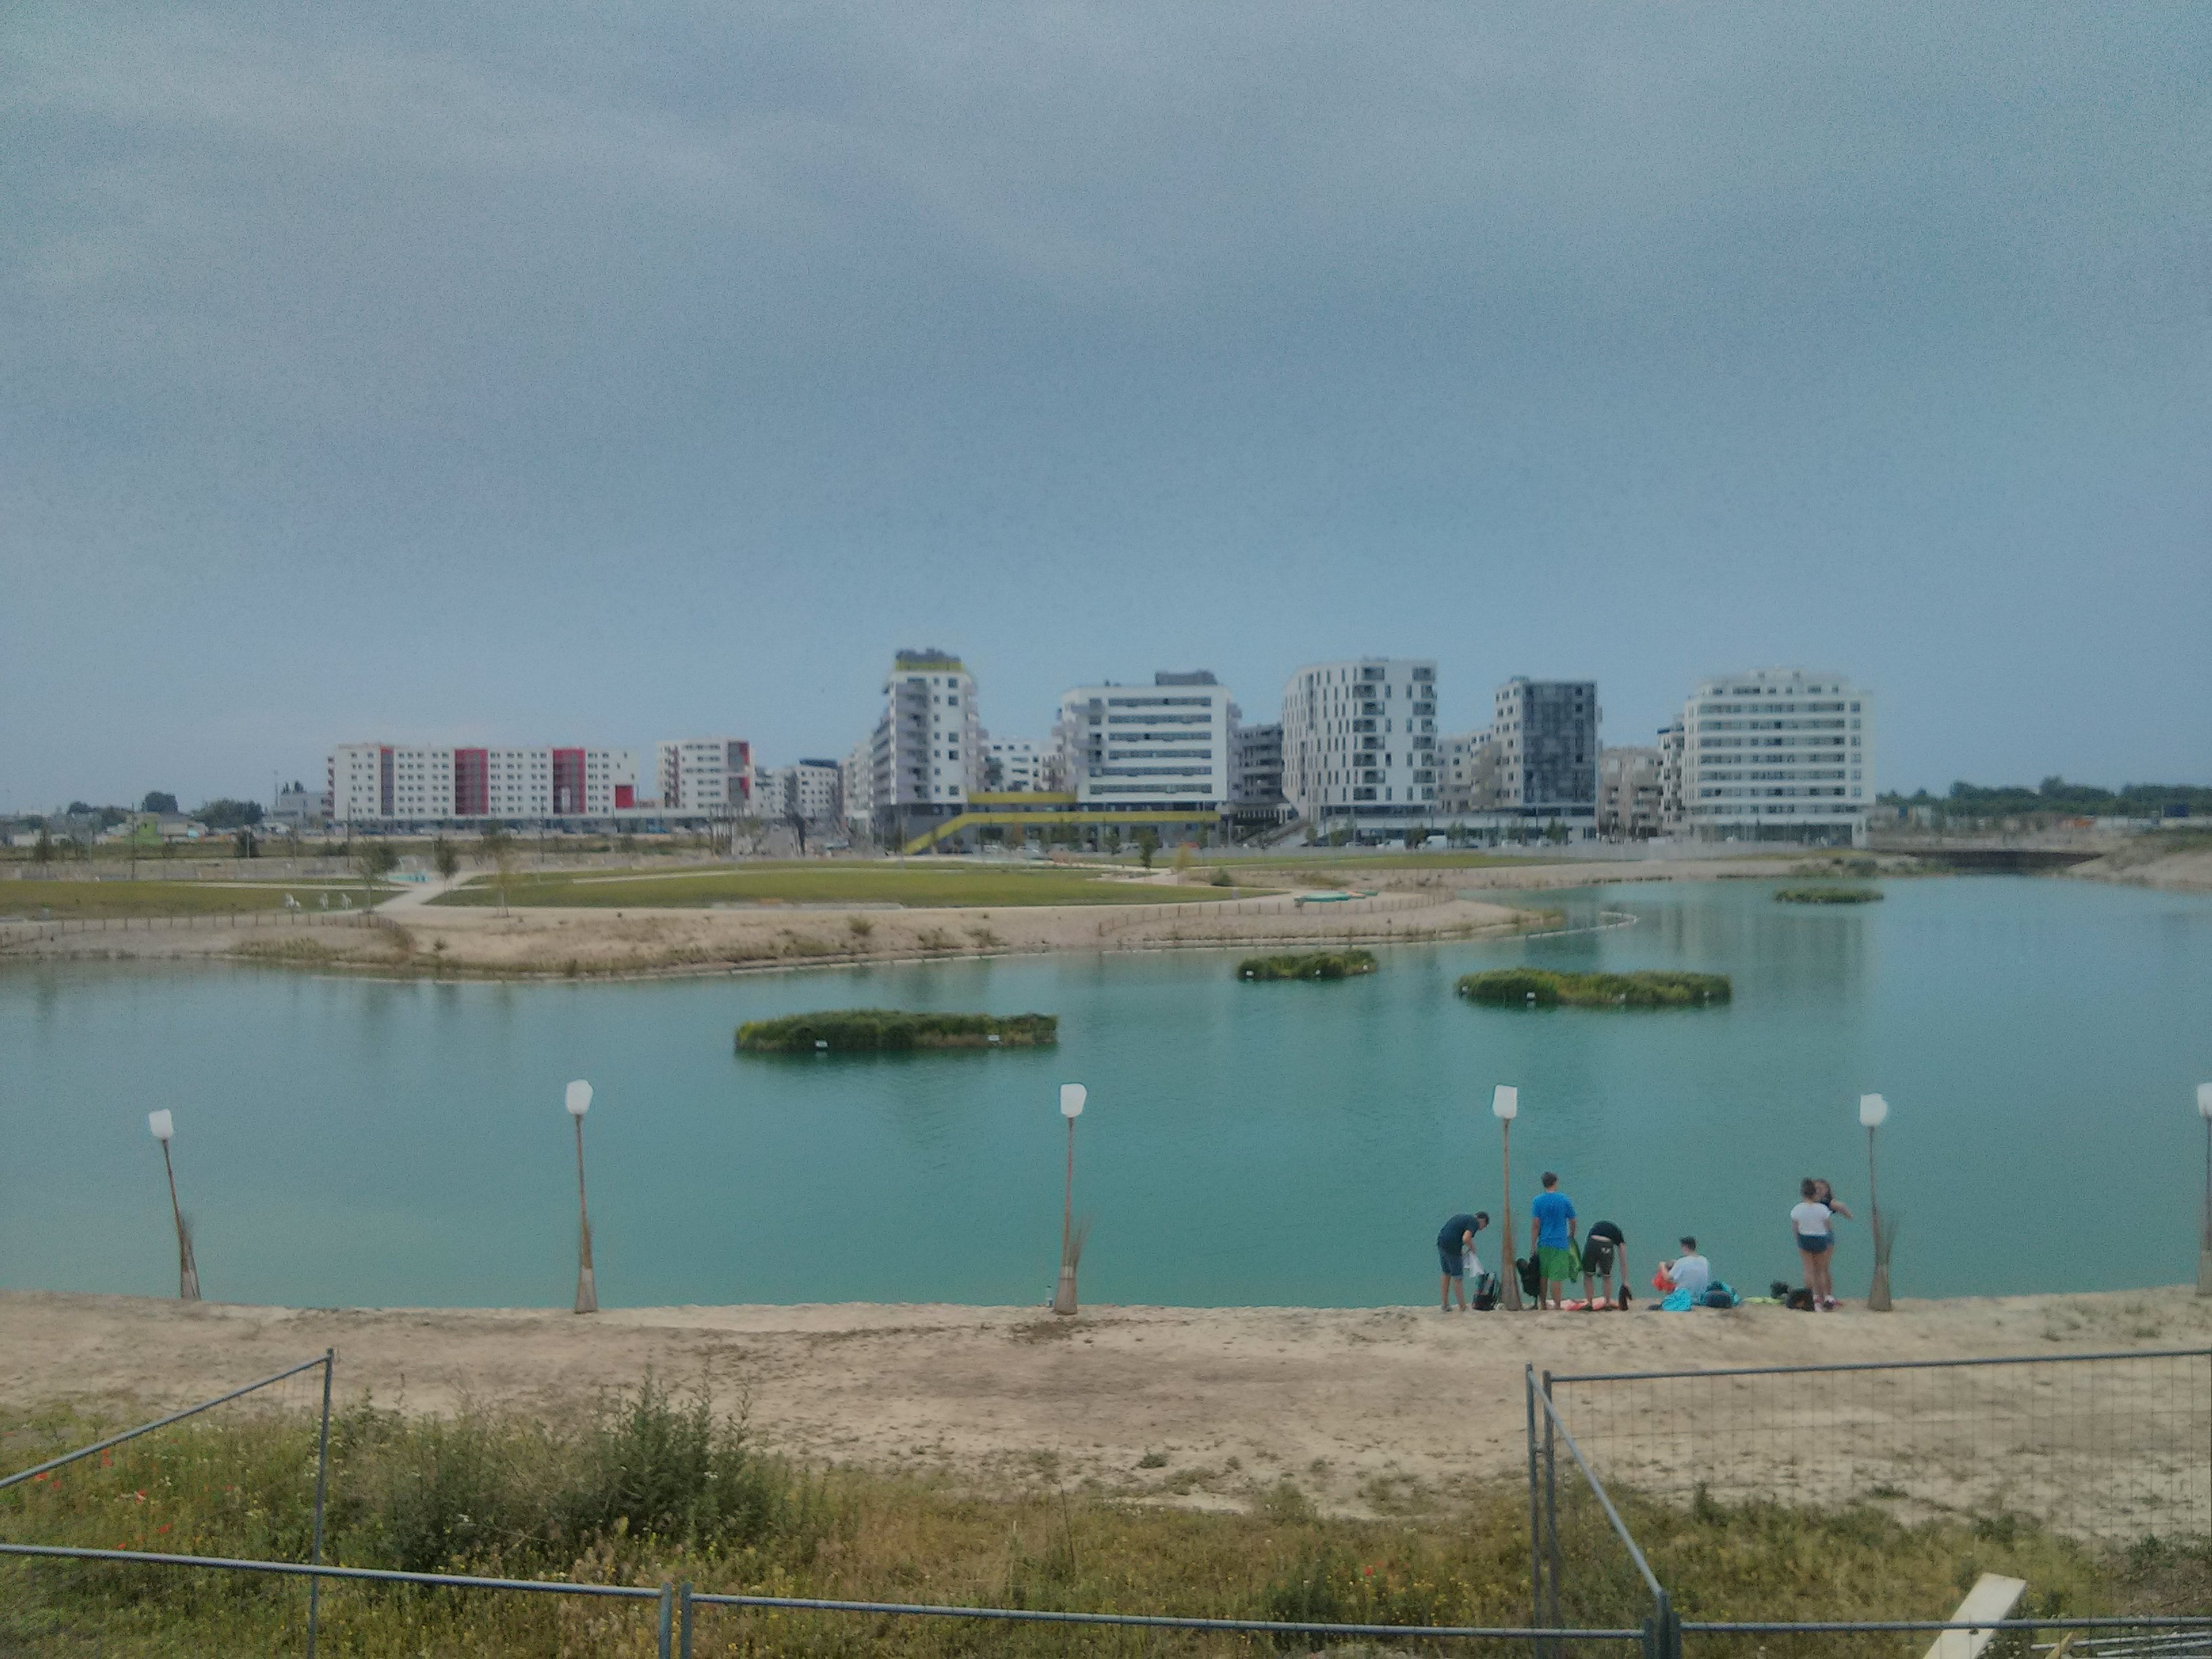 Third case study is the development area 'Seestadt Aspern' (picture by Lukas Franta)